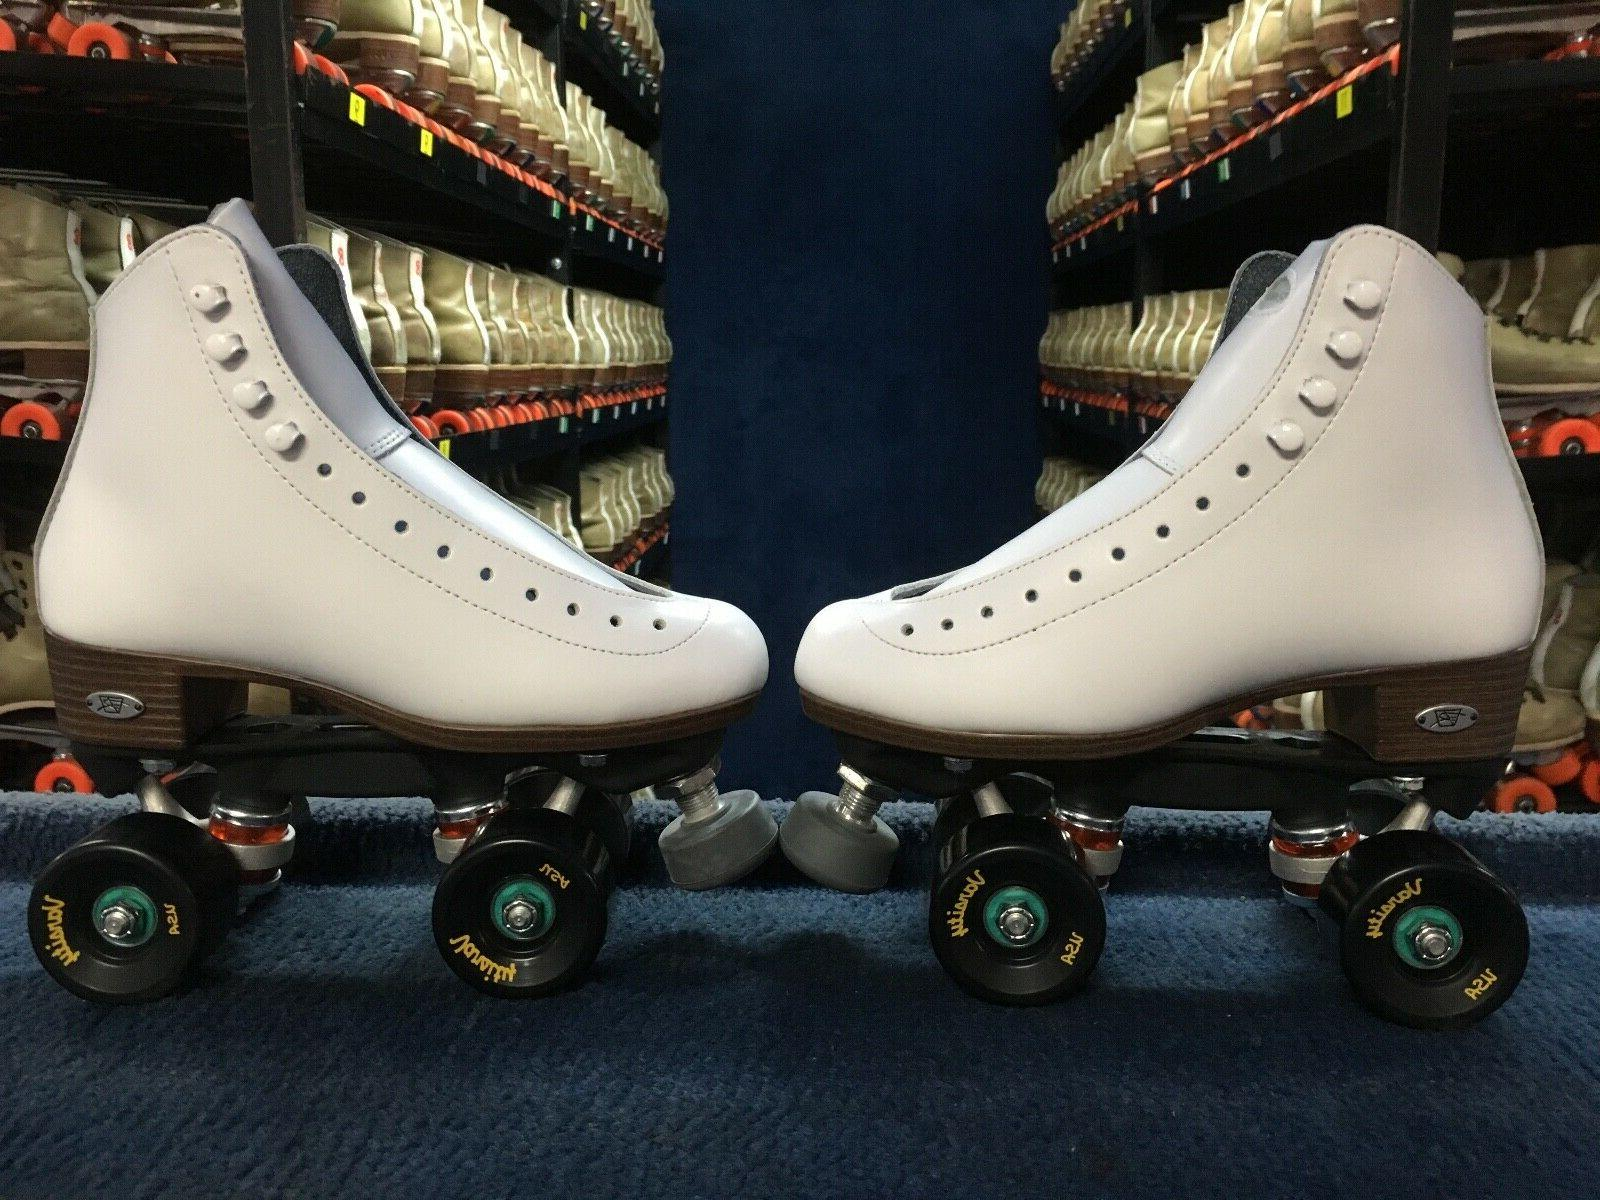 Riedell 120 Artistic Leather Skates